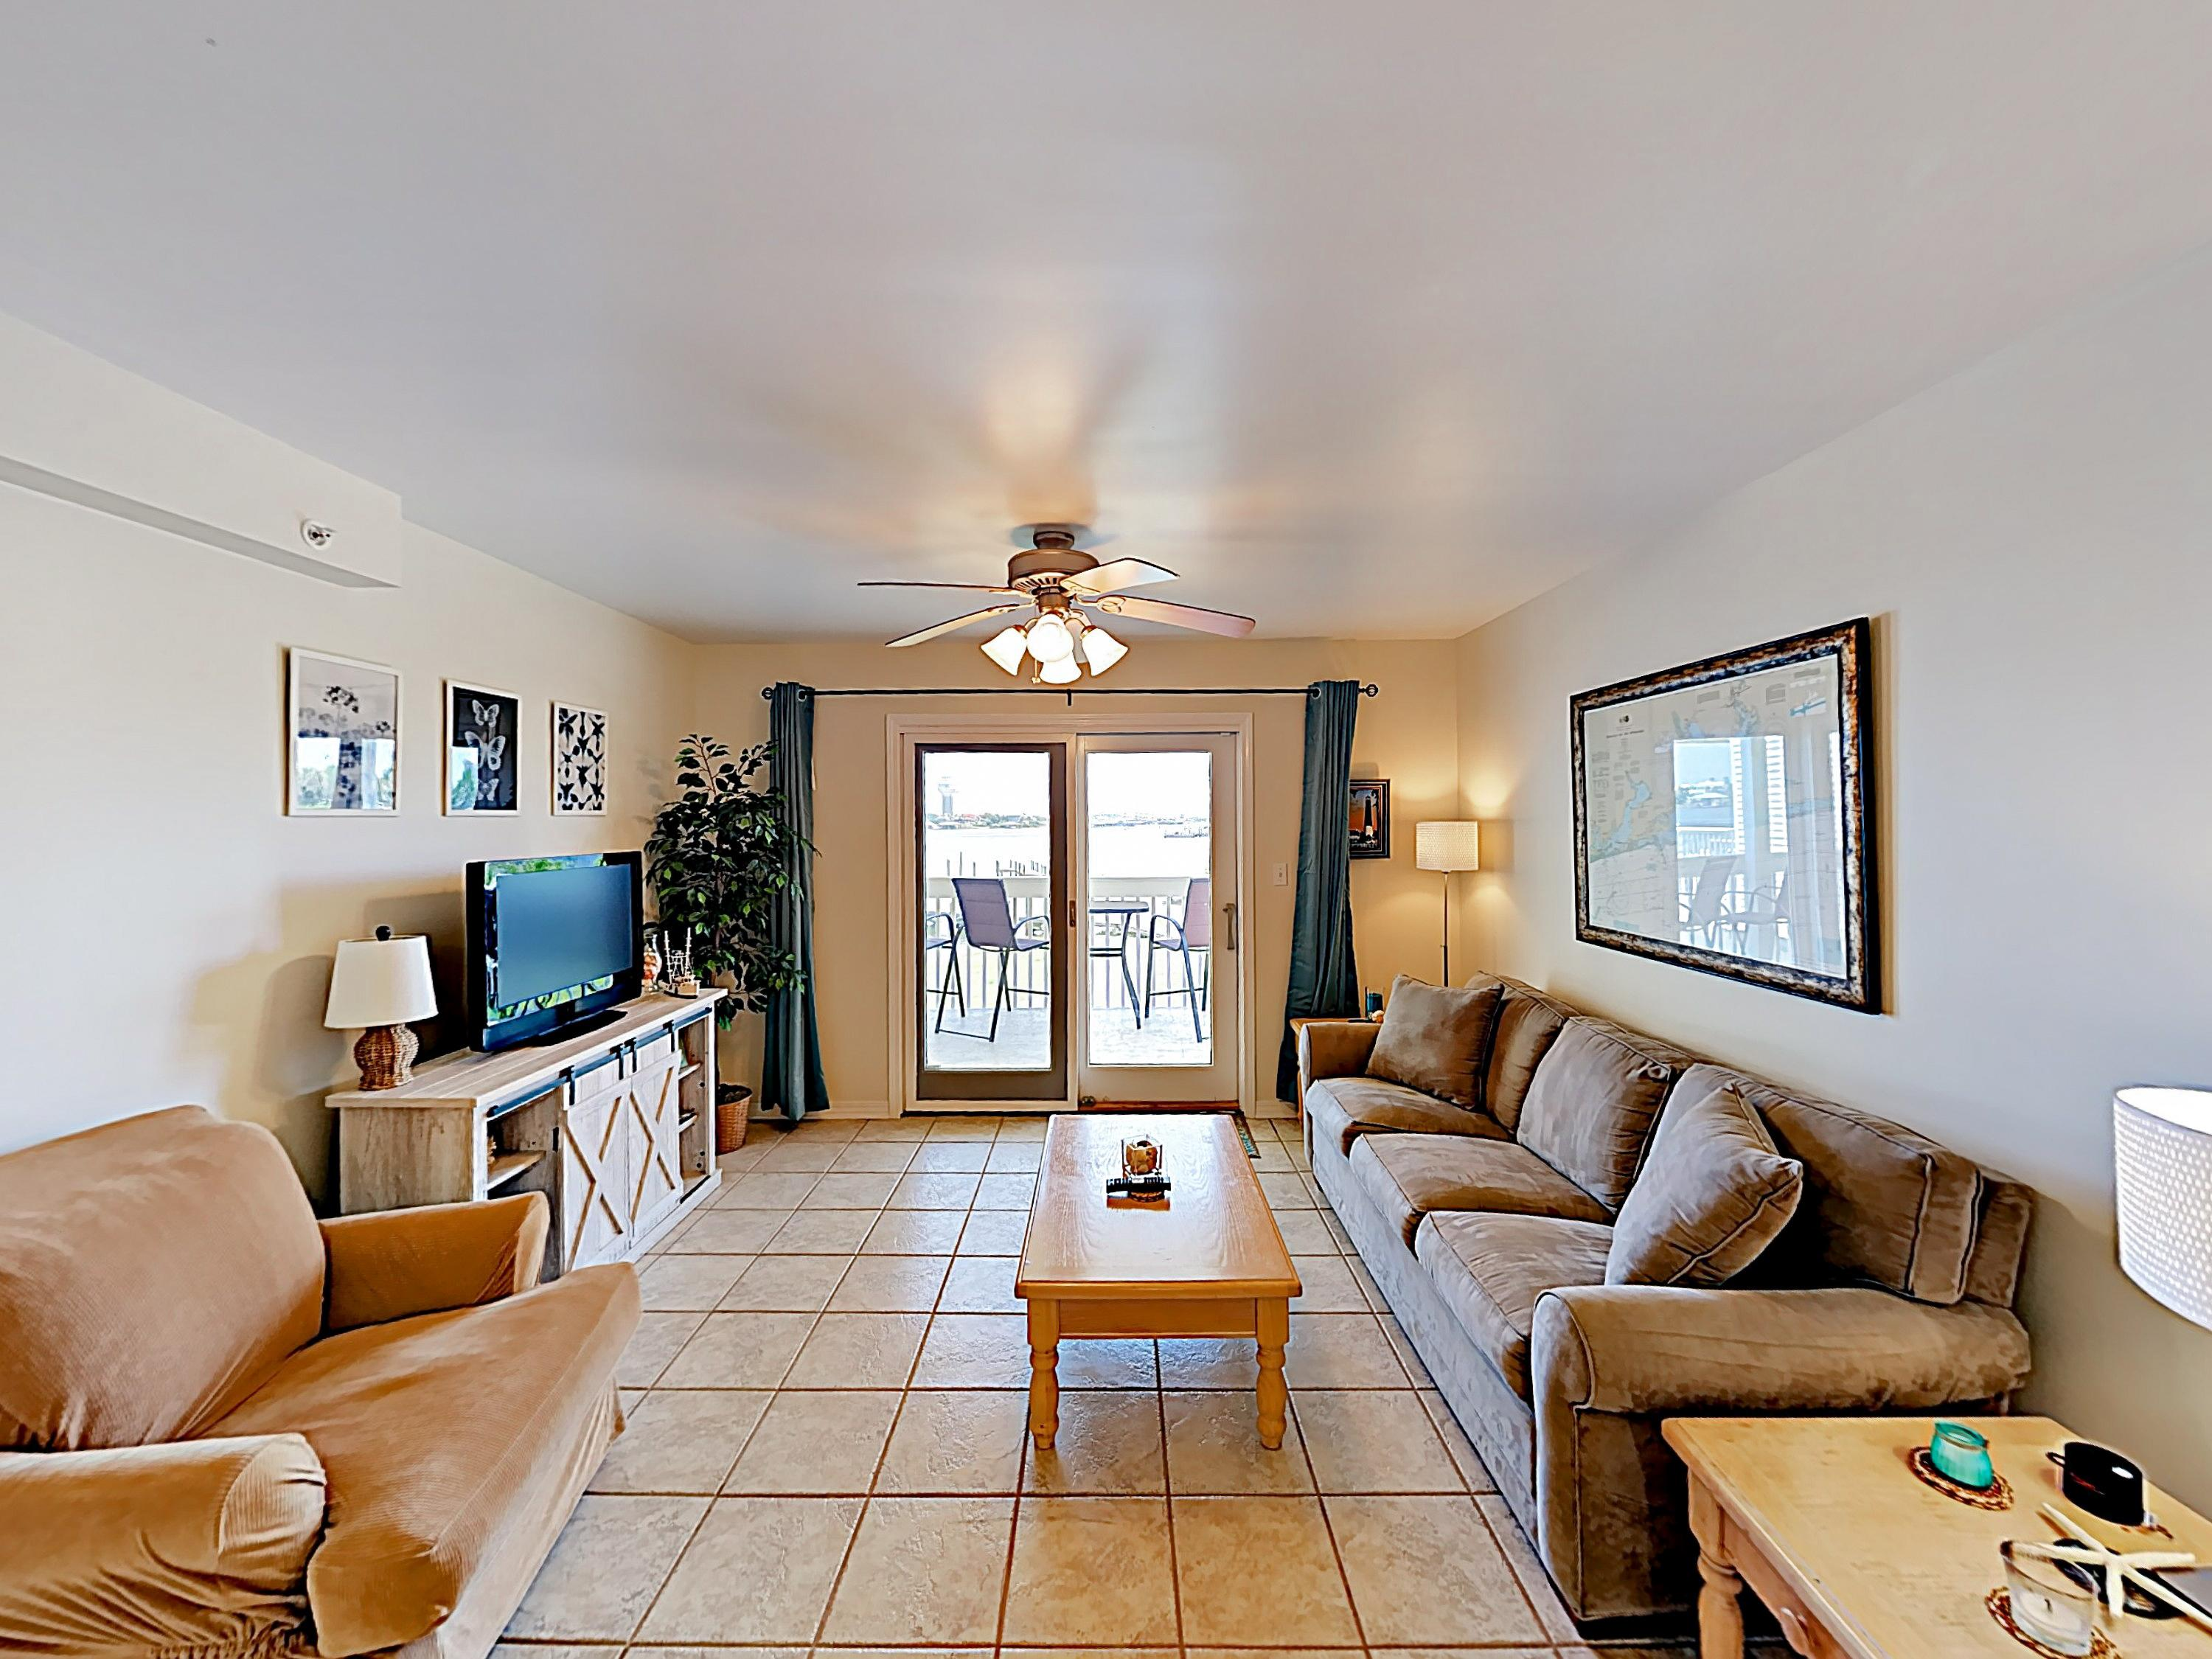 Welcome to the Docks on Old River! This condo is professionally managed by TurnKey Vacation Rentals.